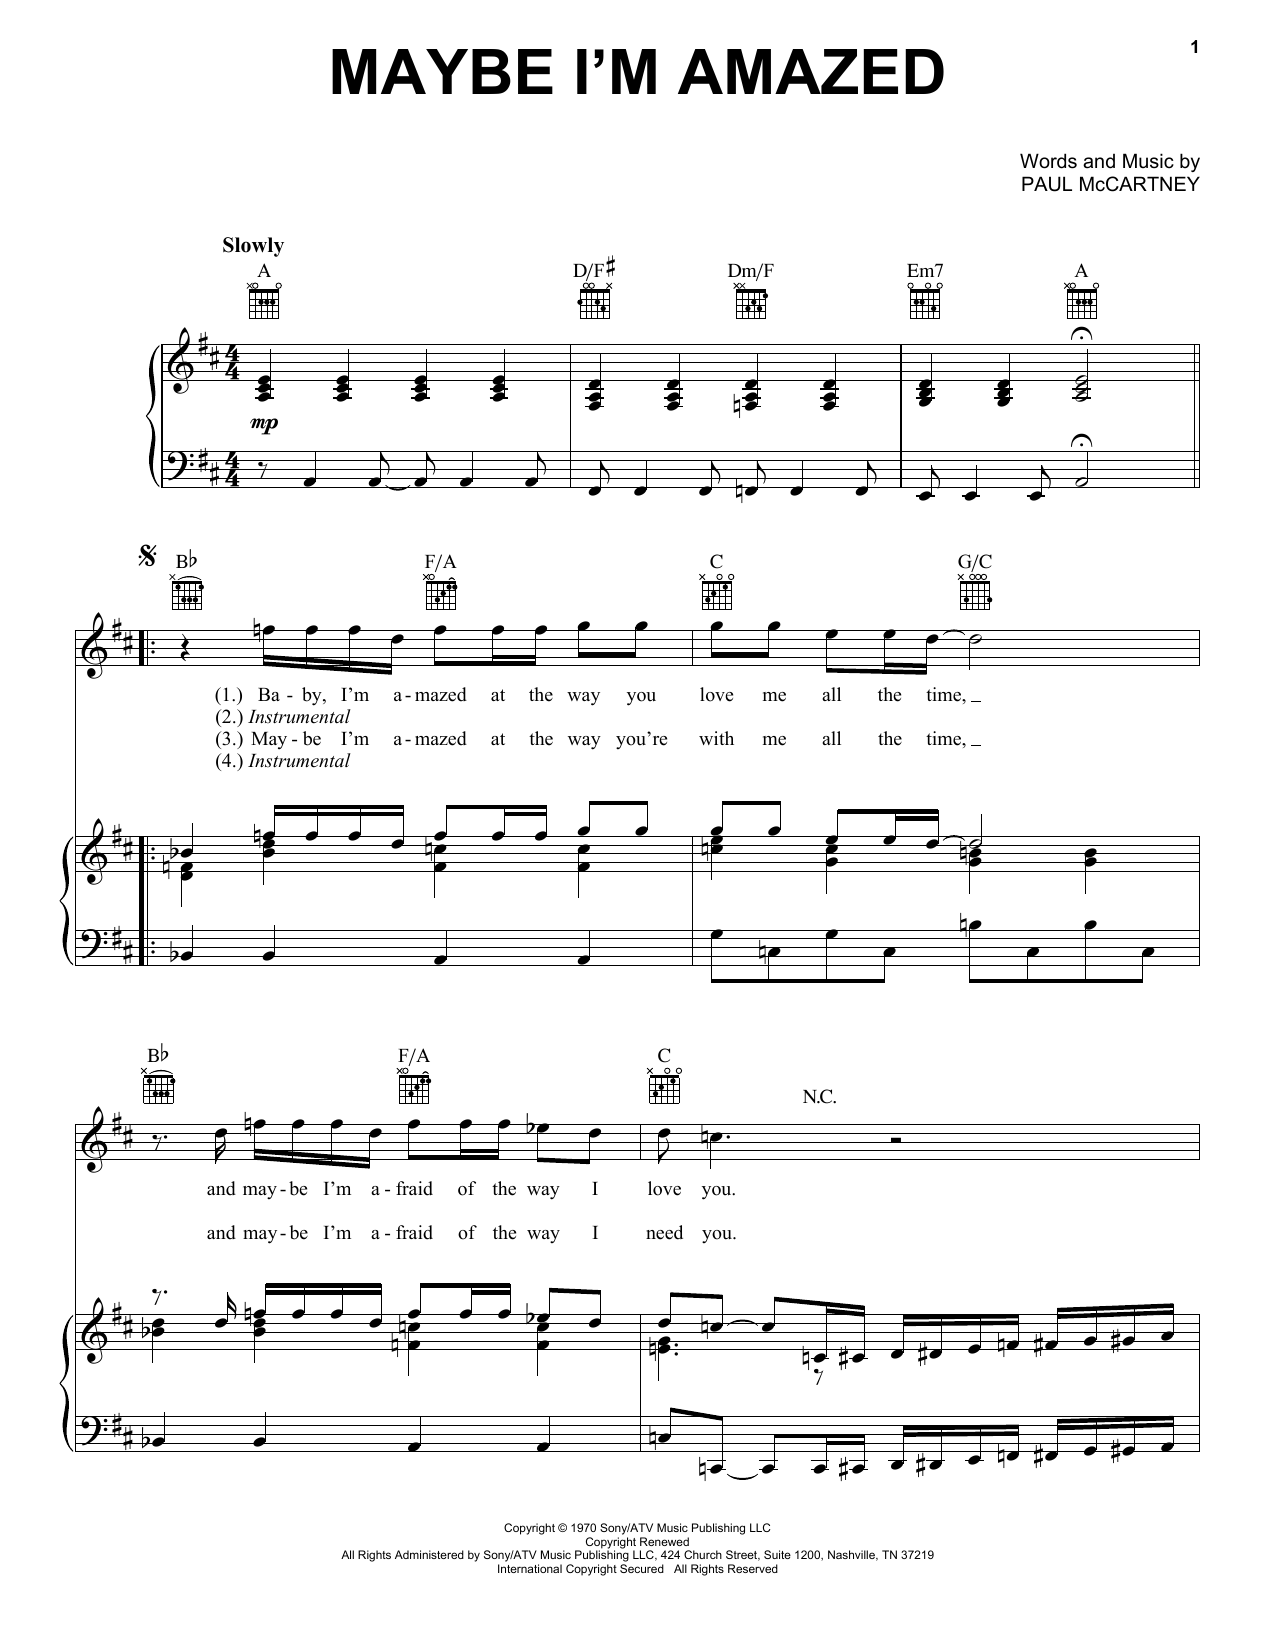 Paul McCartney Maybe I'm Amazed sheet music notes and chords. Download Printable PDF.